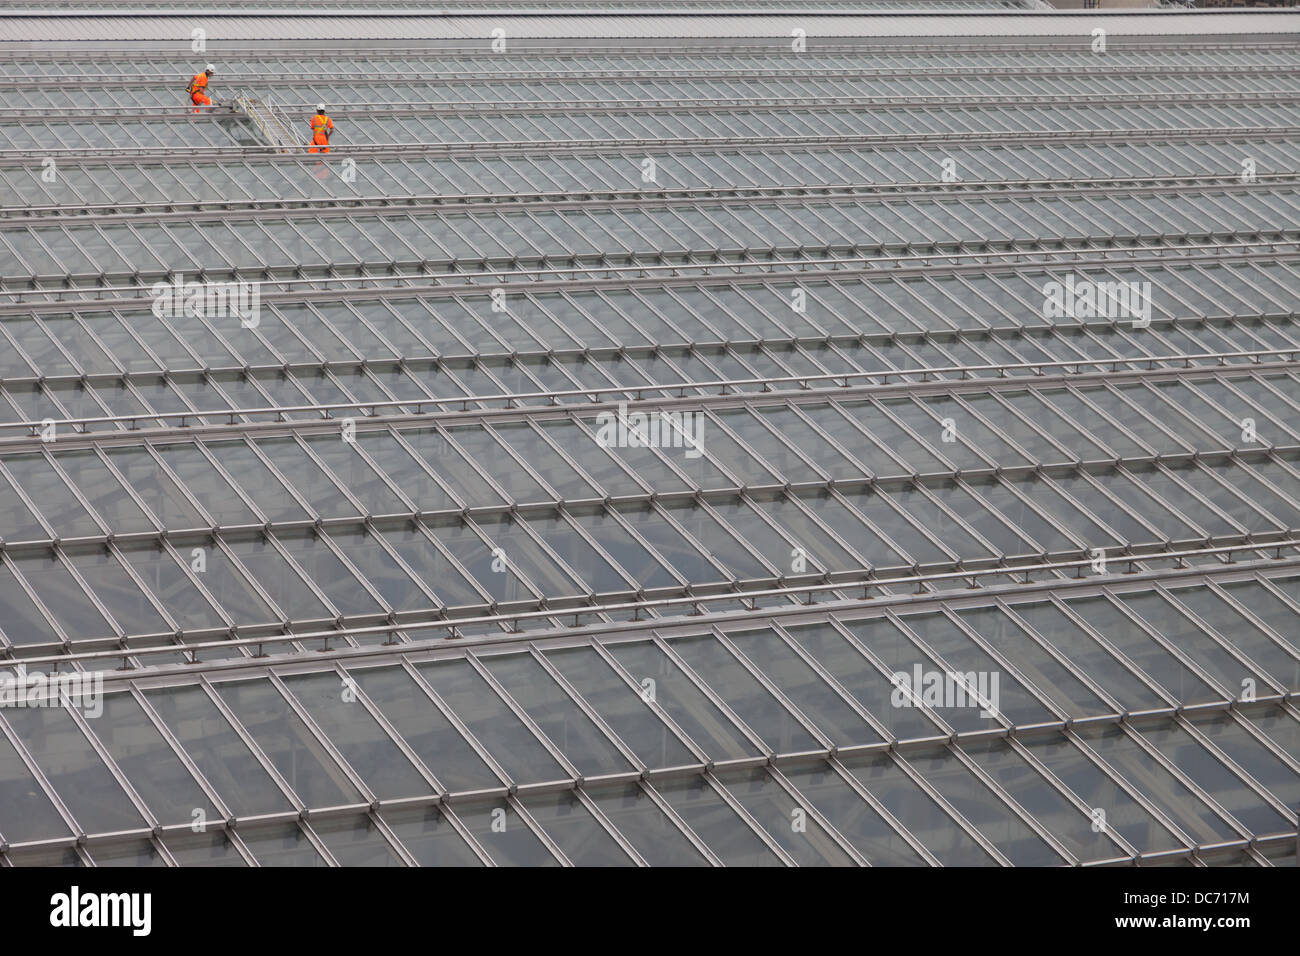 Maintenance workers cleaning the glass roof of Edinburgh's Waverly Station - Stock Image